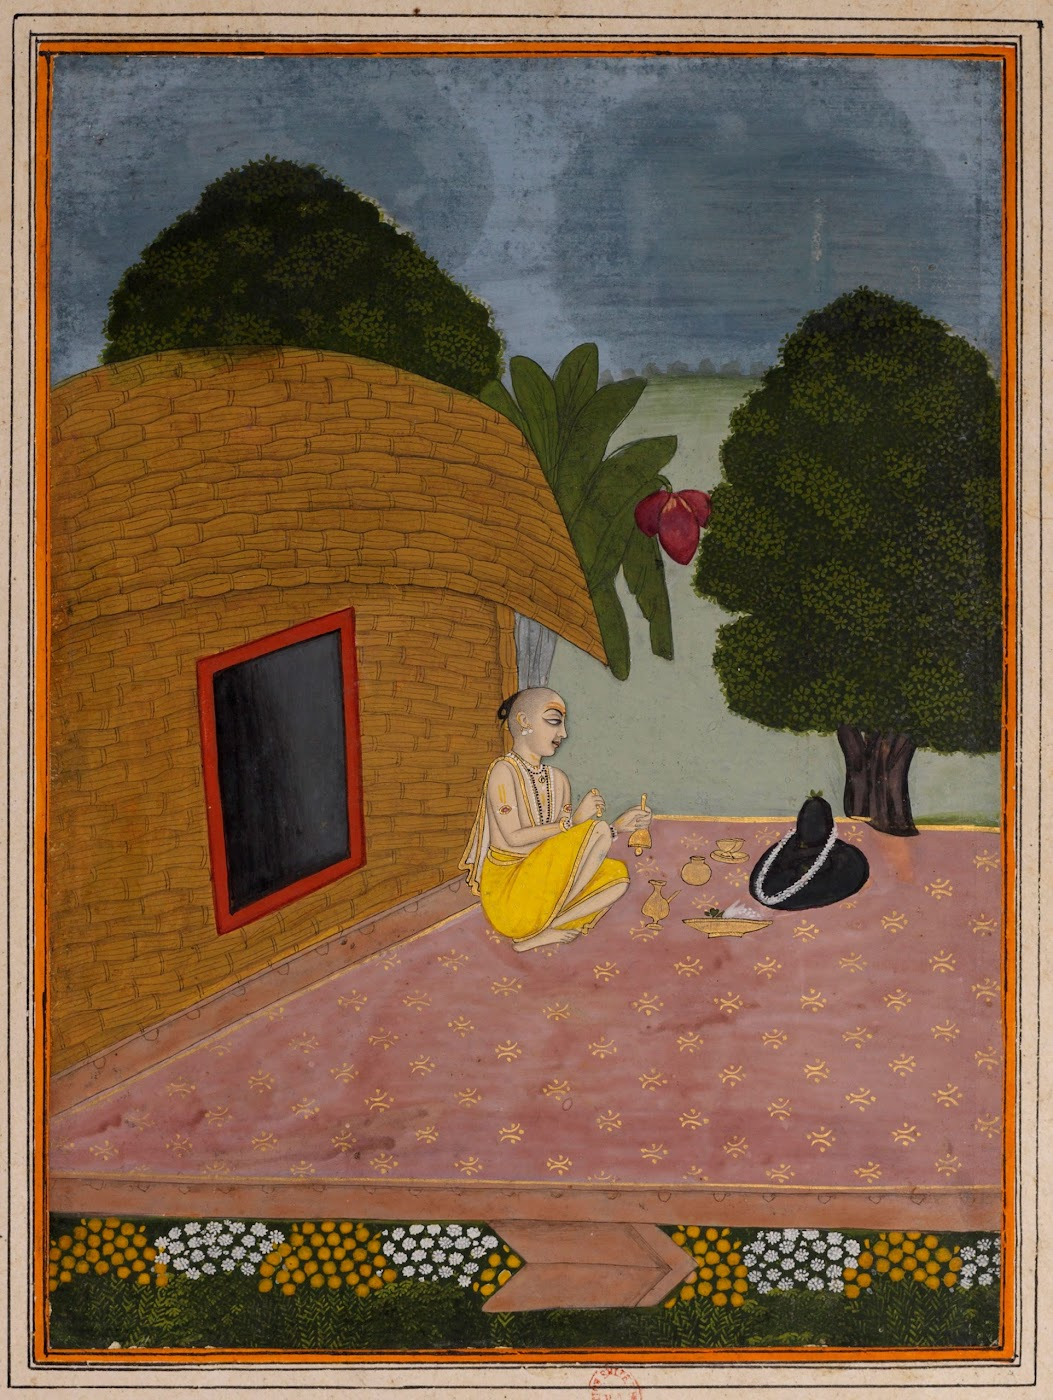 Man Worshipping Shiva Linga - Rajput Ragamala Painting from a Manuscript, Circa 1800